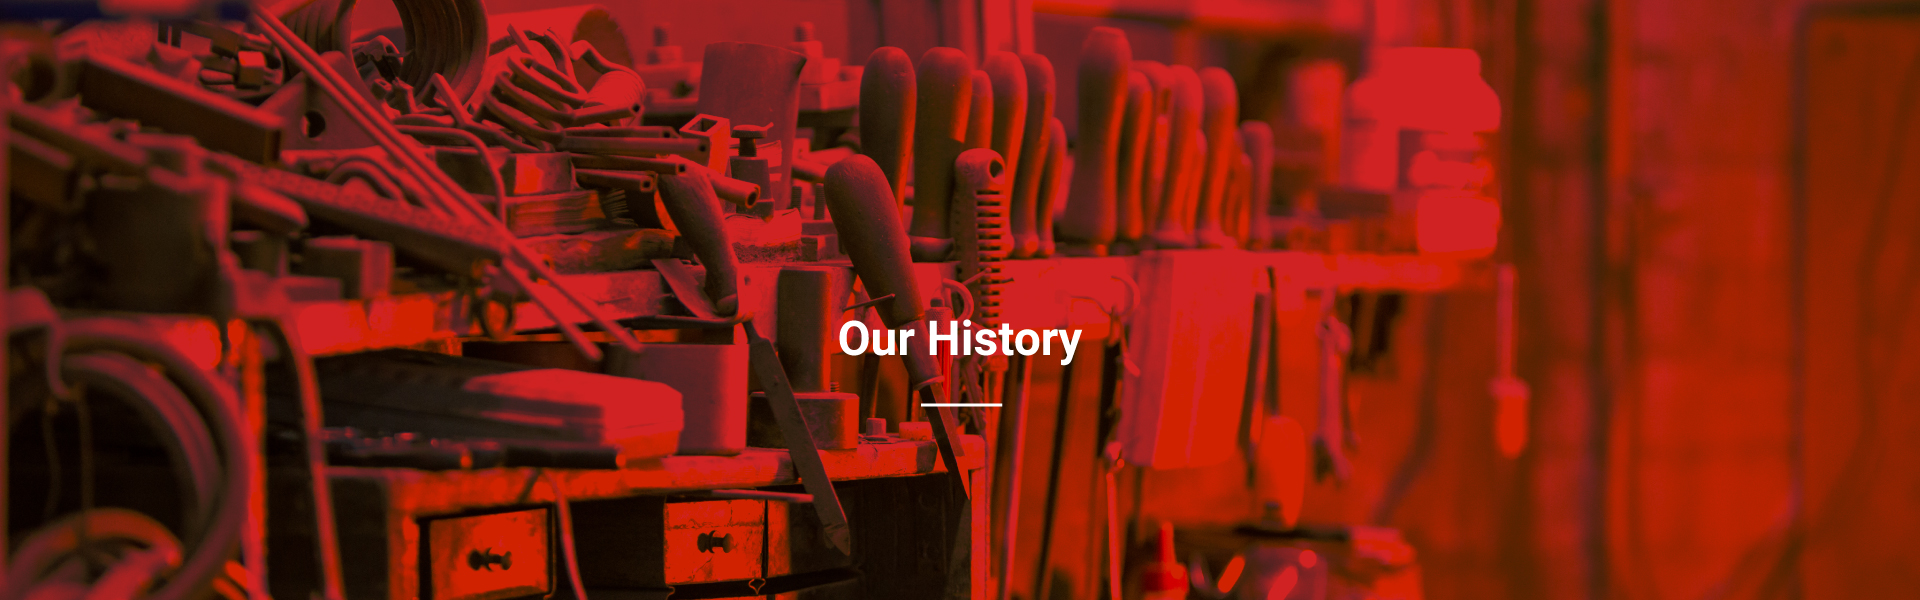 History header banner for Dukinfield Induction website About us page